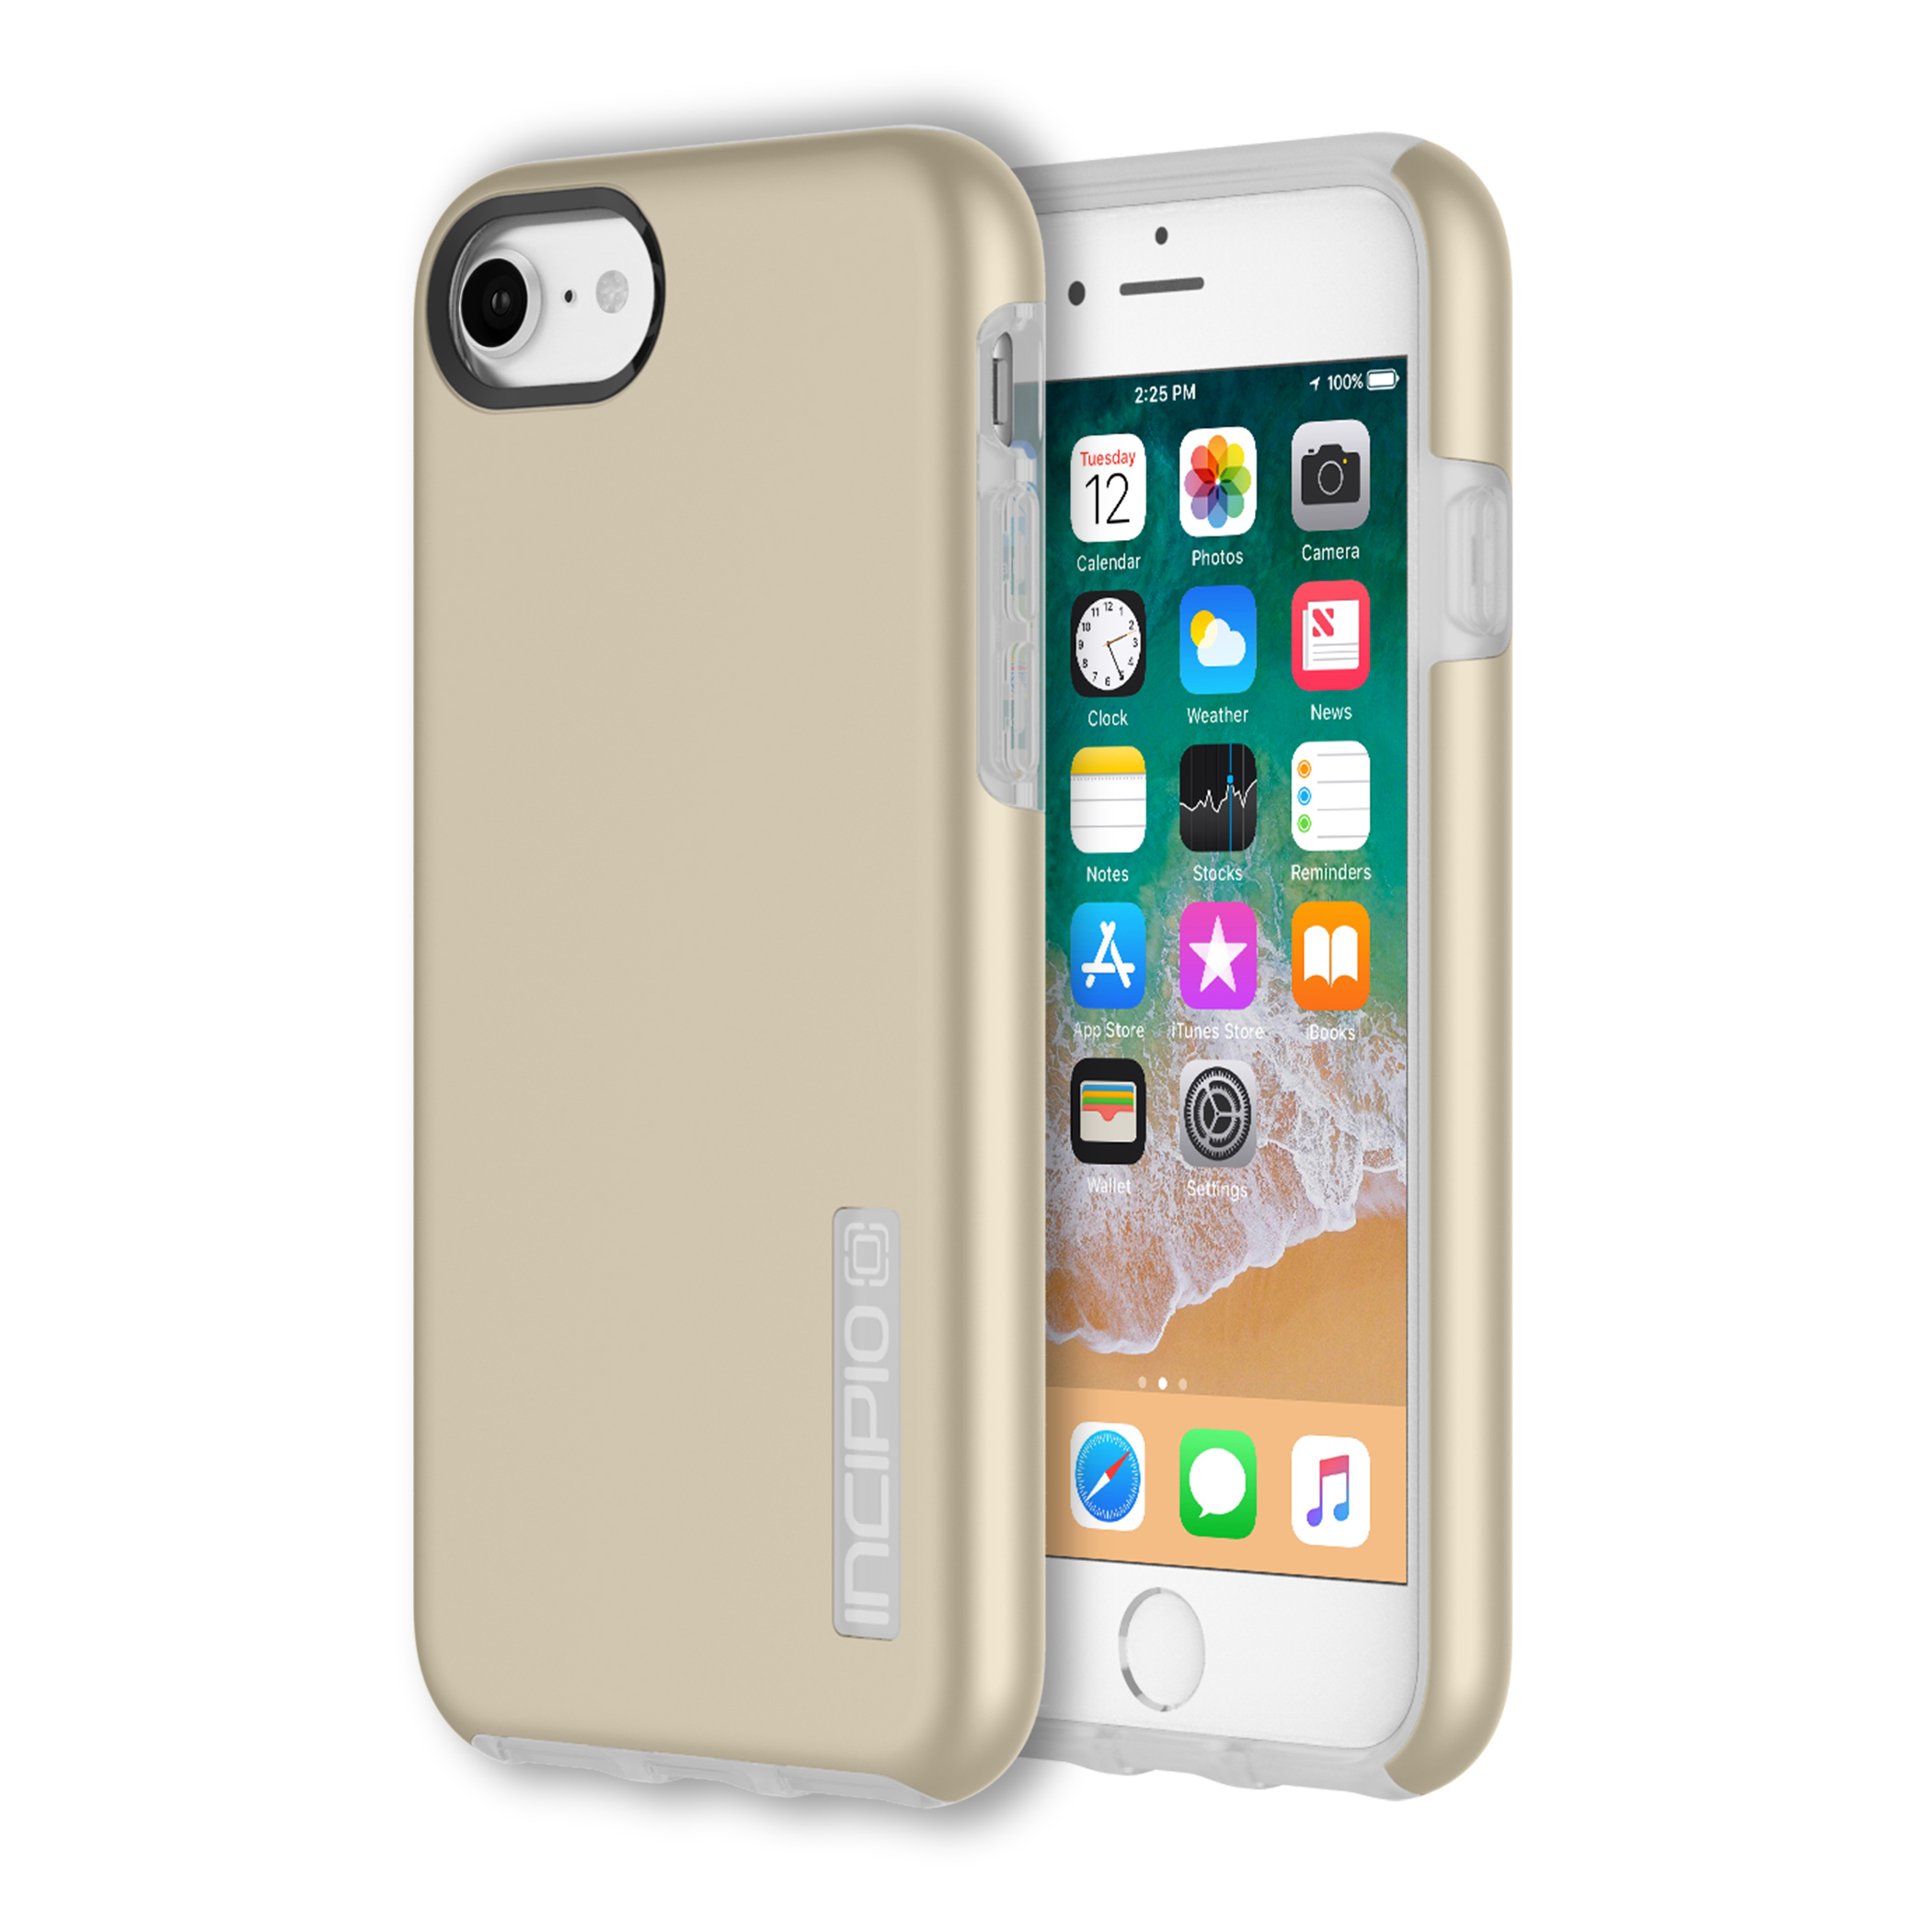 Incipio DualPro for iPhone 8/7 & iPhone 6/6s - Iridescent Champagne